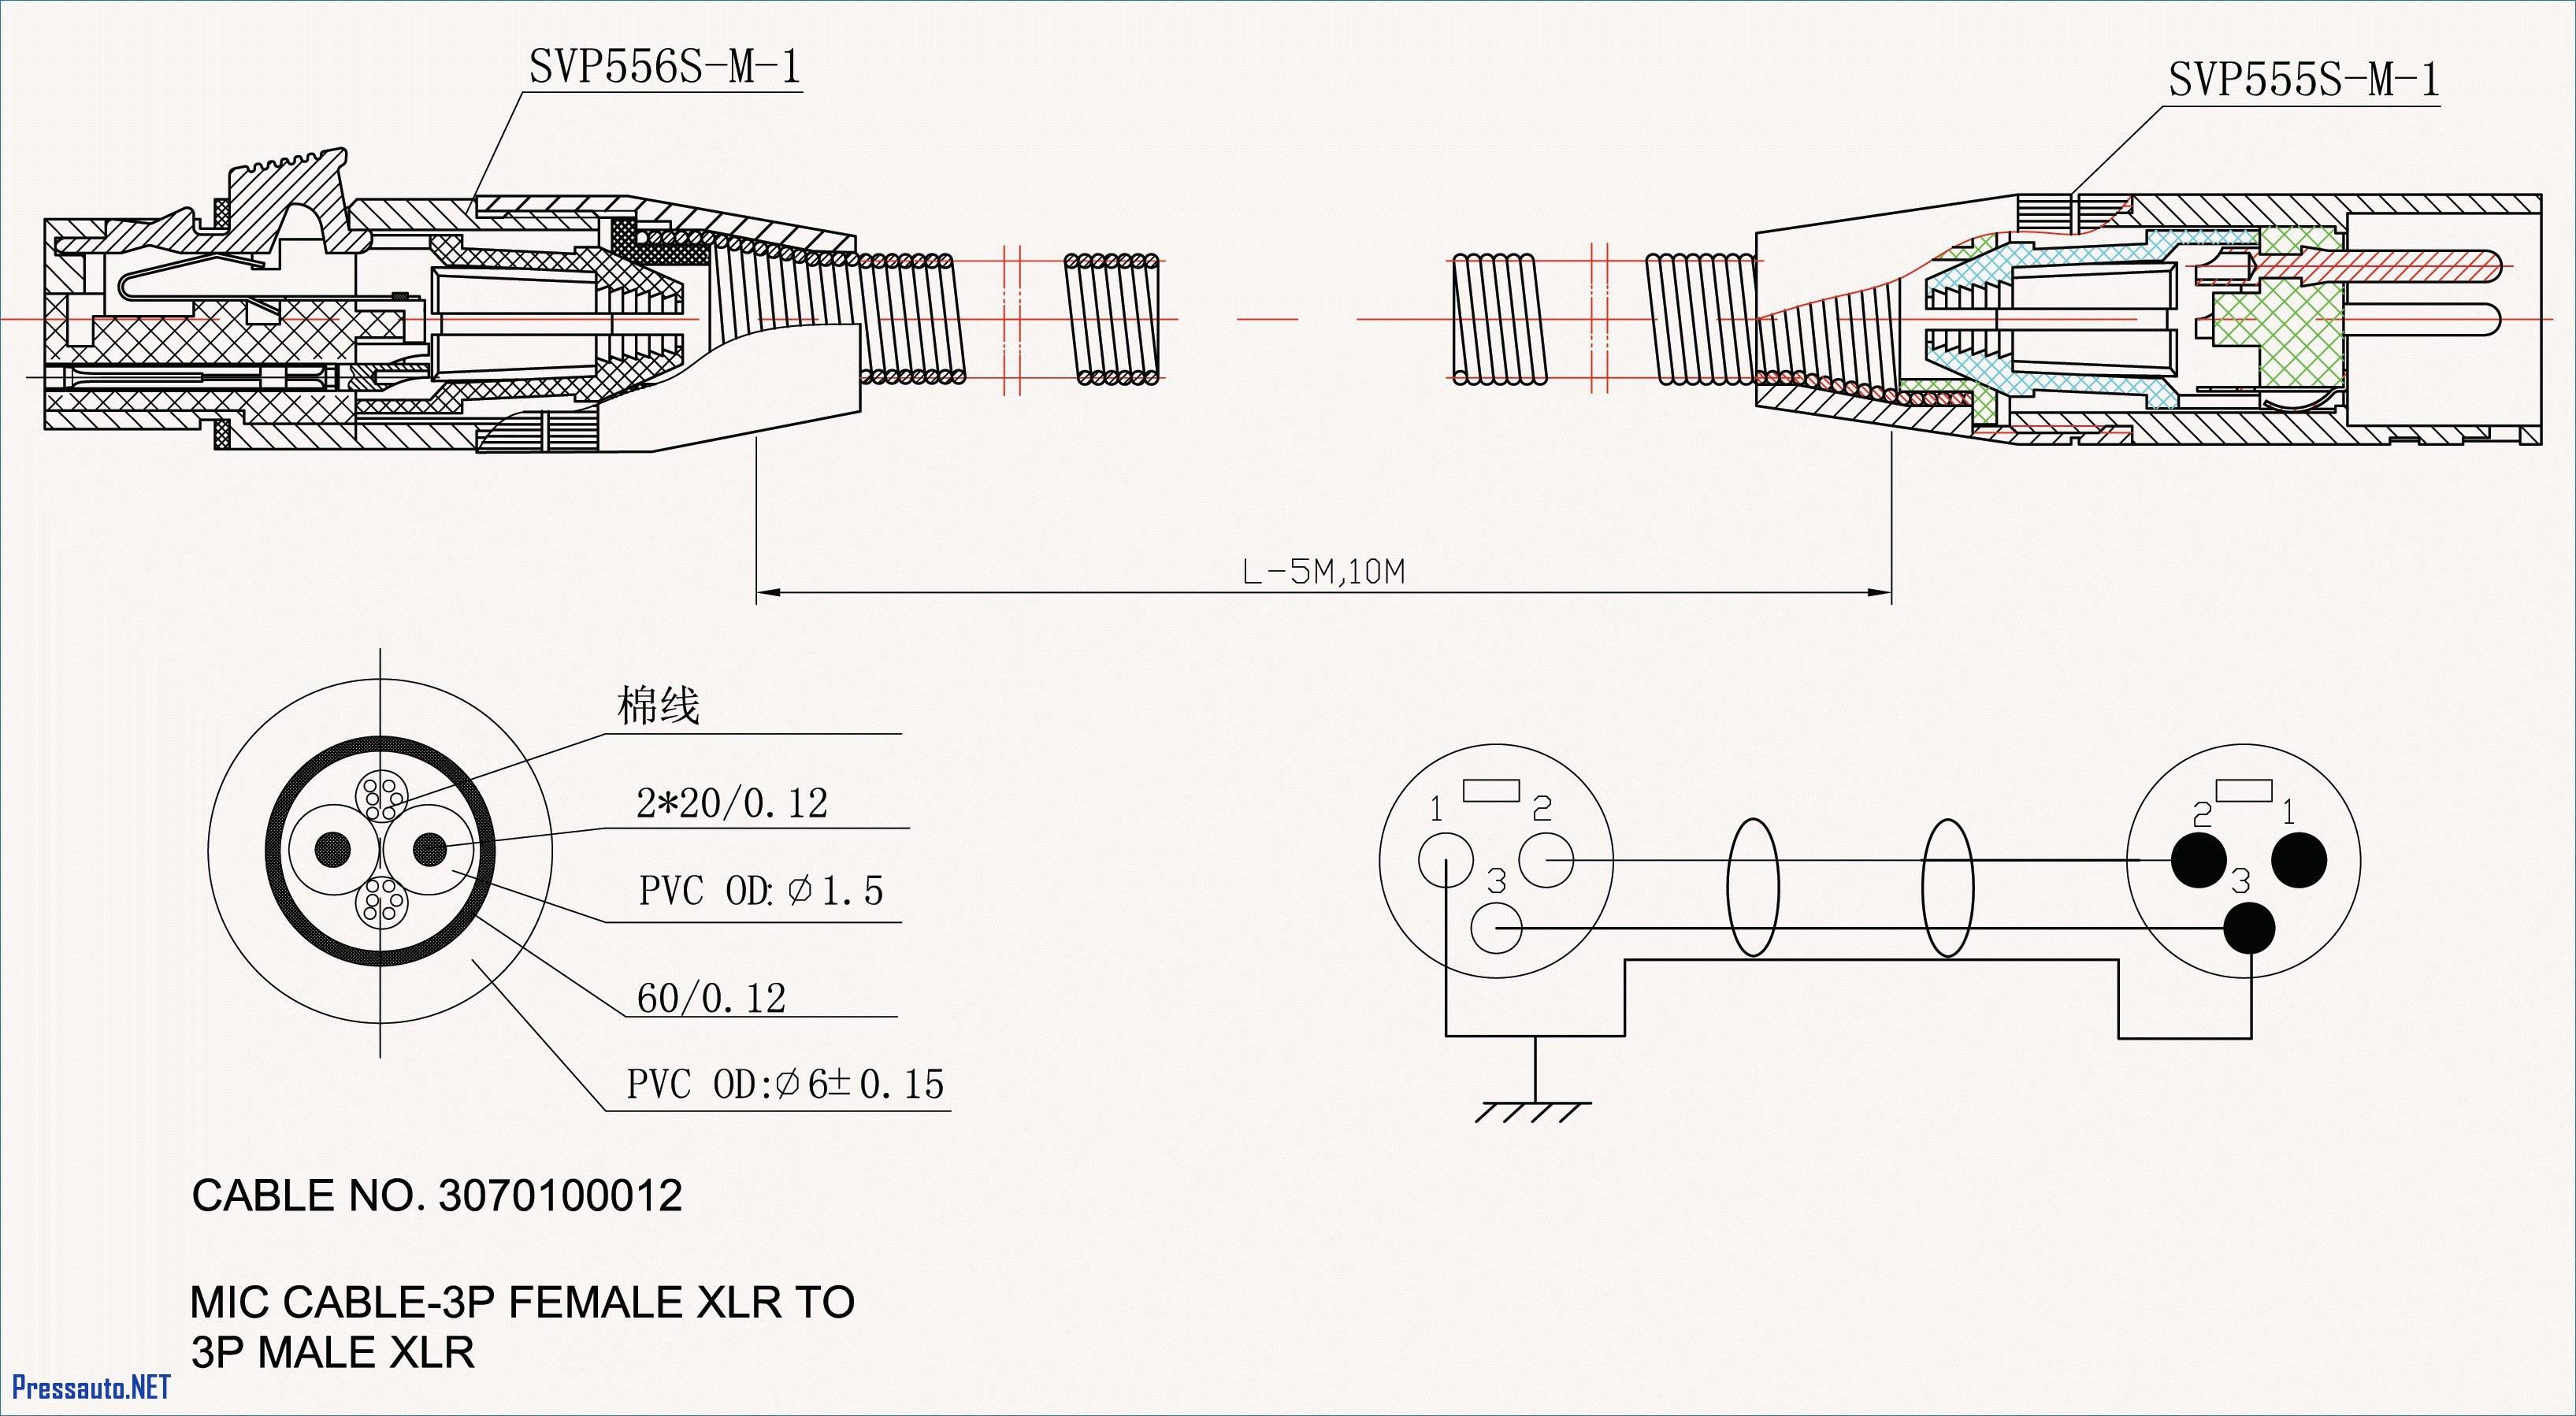 Wiring Diagram for Xbox 360 Power Supply New Wiring Diagram Xbox 360 Power Supply Archives Ipphil